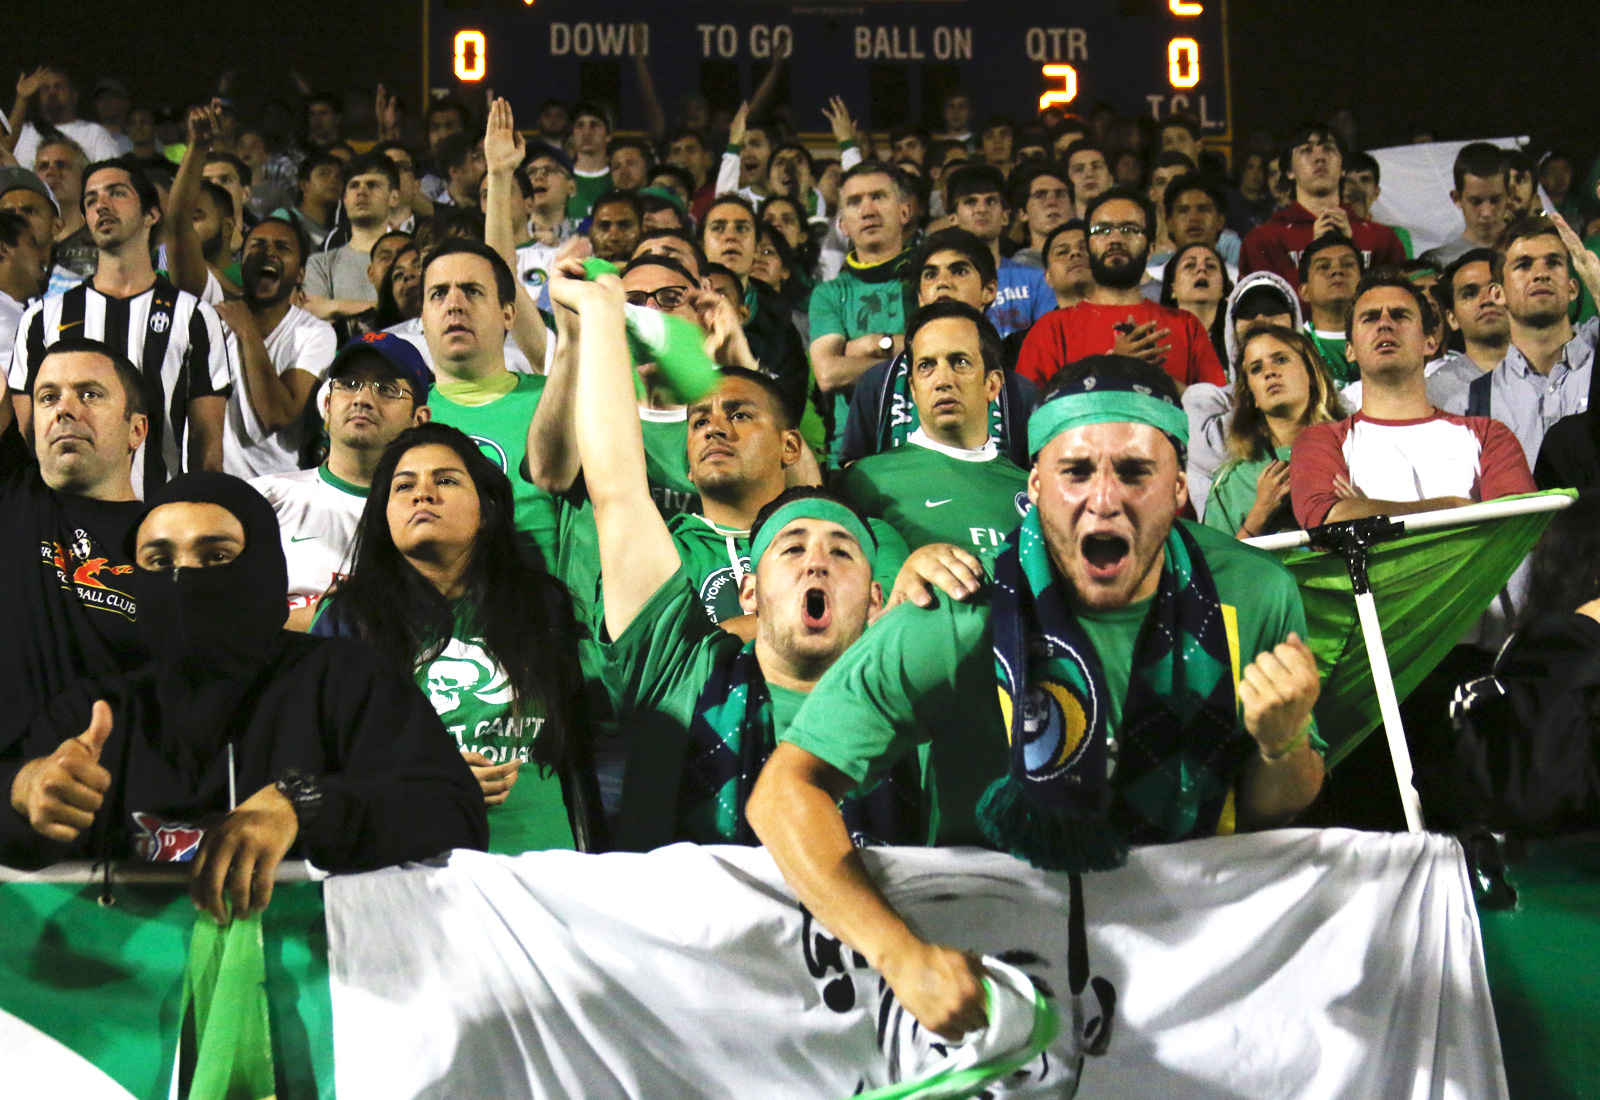 The New York Cosmos supporters section reacts to Lucky Mkosana's (77) equalizing goal in the 91st minute, which sent the game to extra time. The Cosmos would go on to beat NYCFC in penalties, 4-3, to set up a round-of-16 clash vs. the Red Bulls.